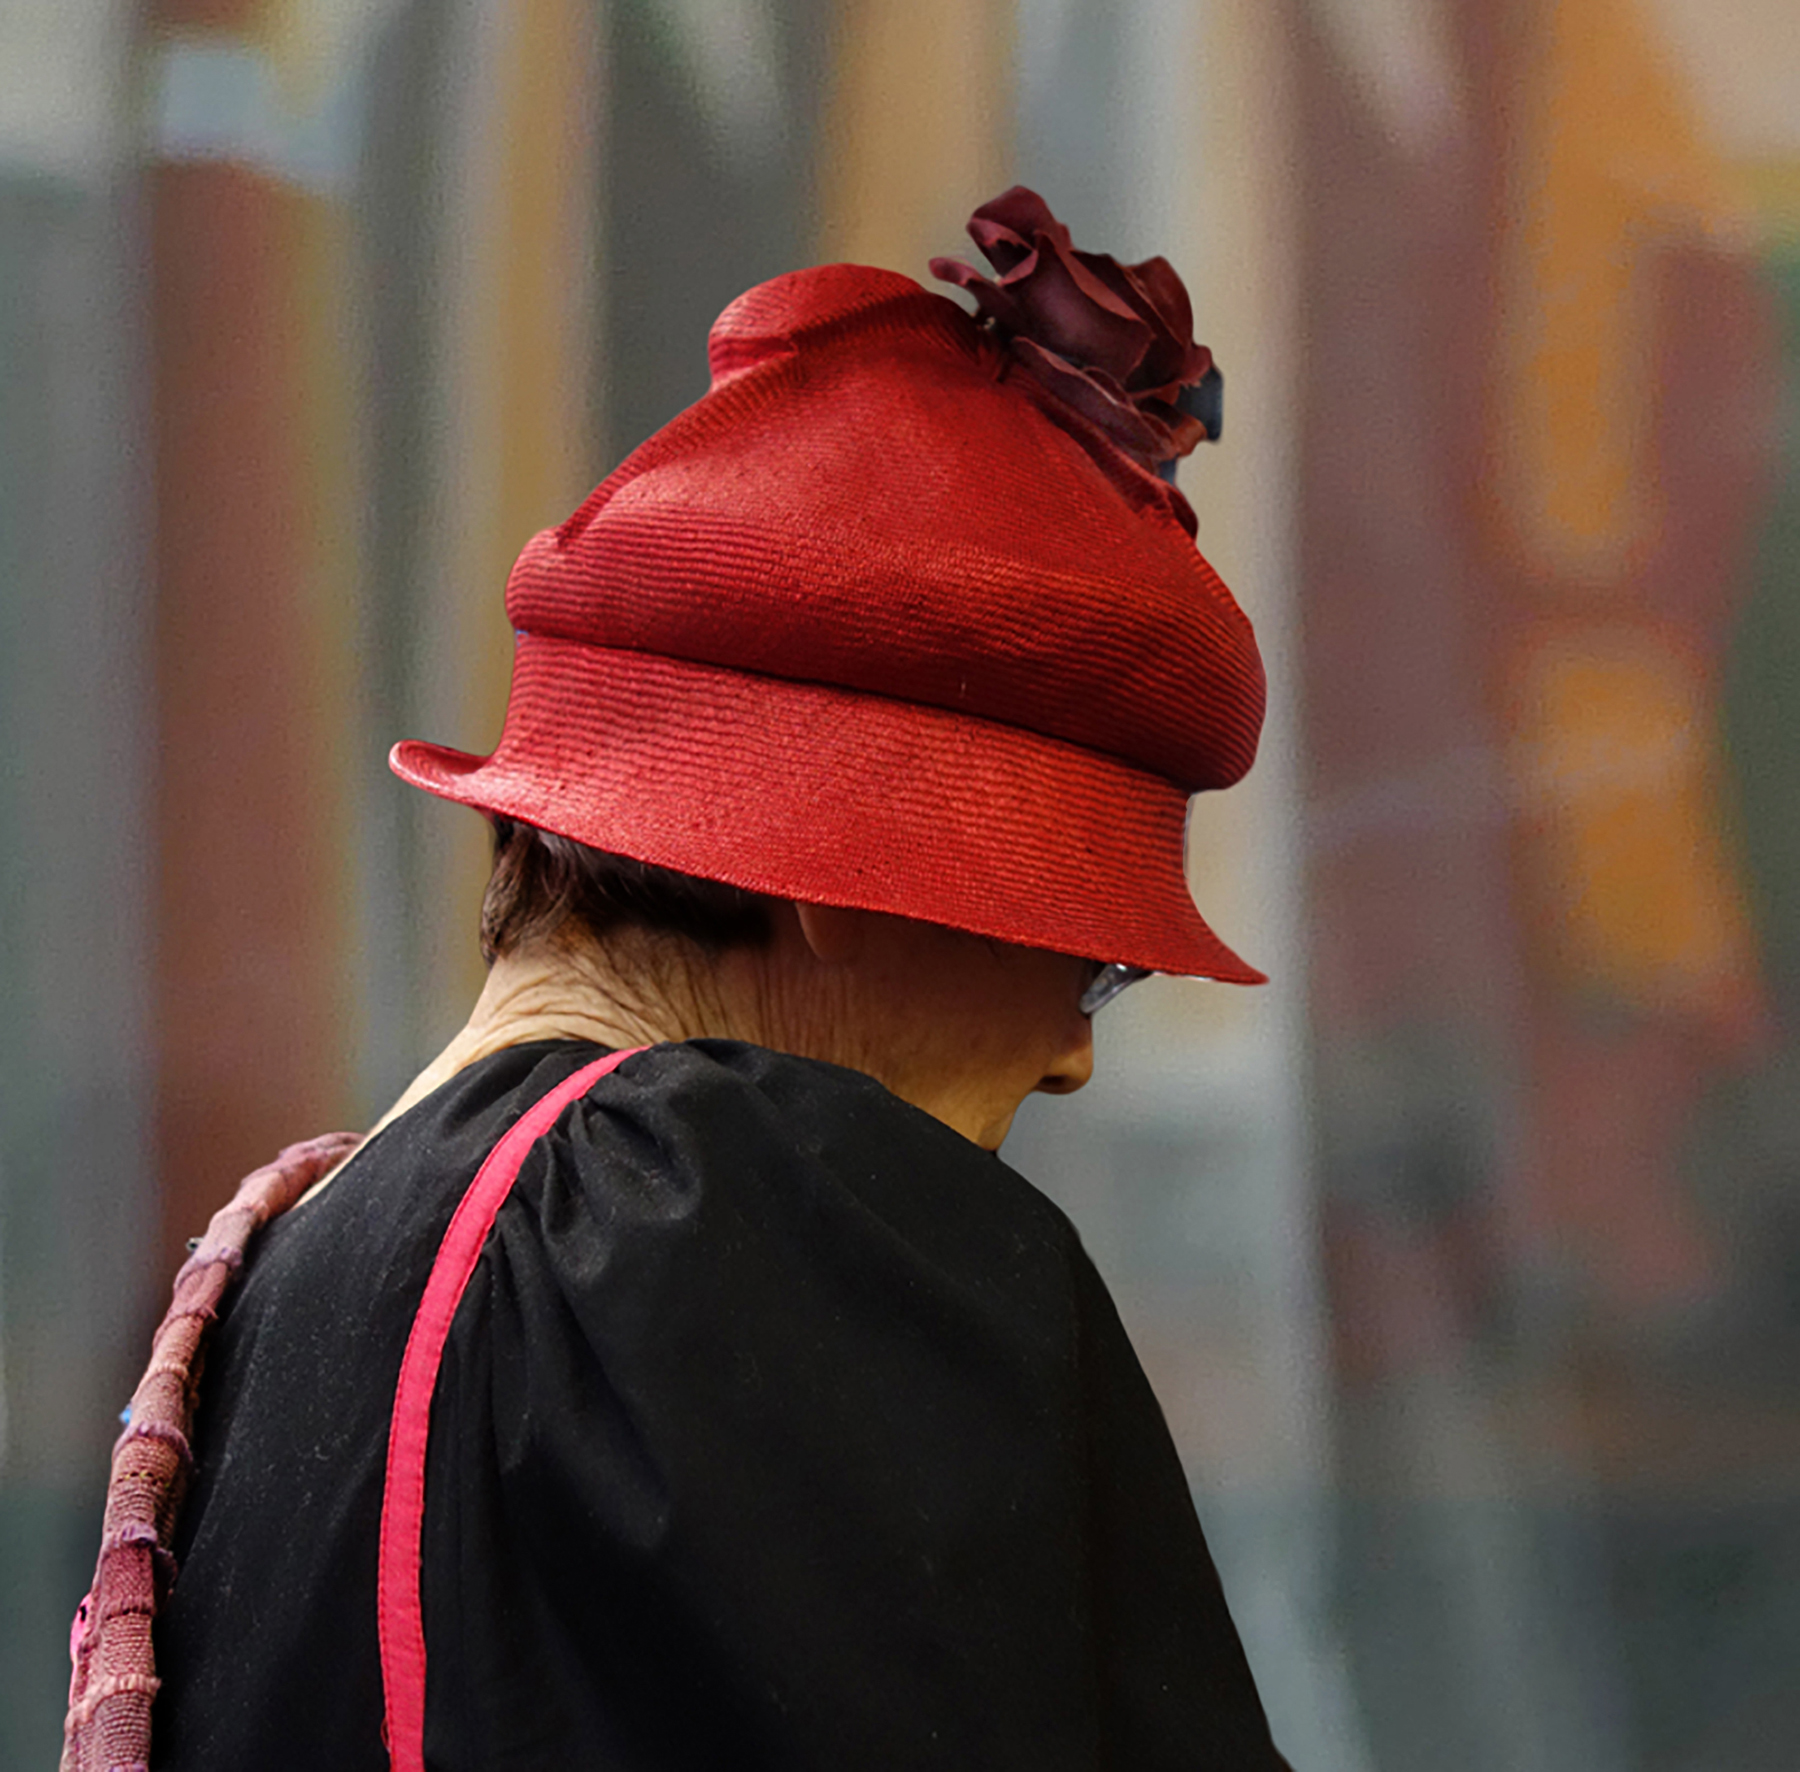 Shifra_Leyathan_The red hat.jpg